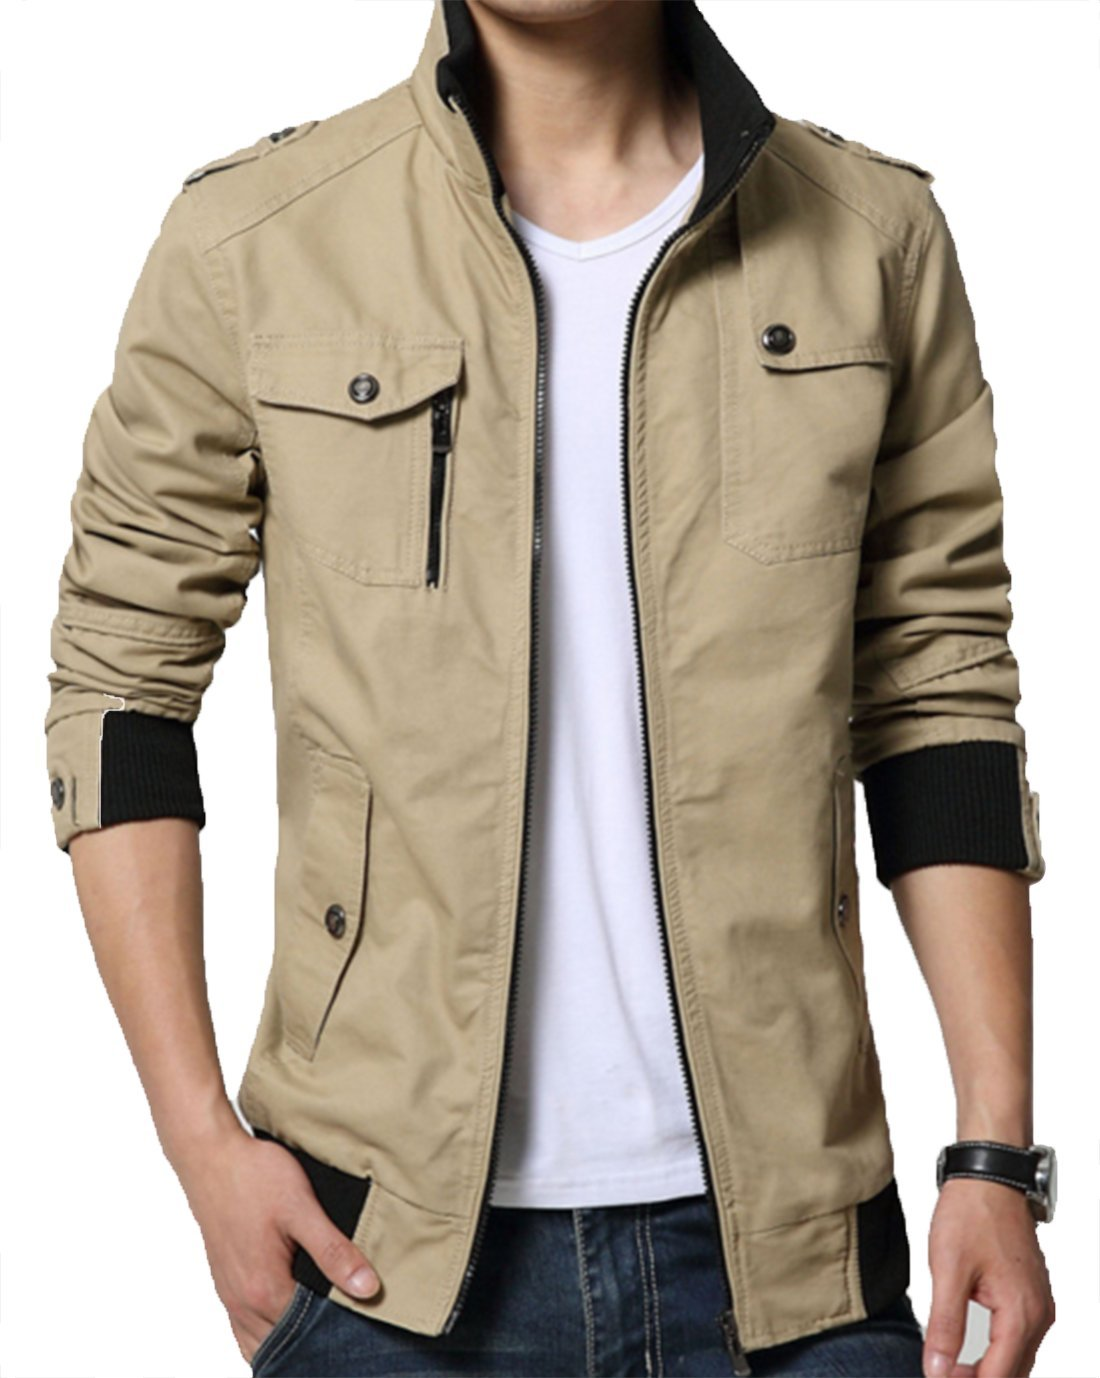 XueYin Men's Solid Cotton Casual Wear Stand Collar Jacket(Khaki,L Size)